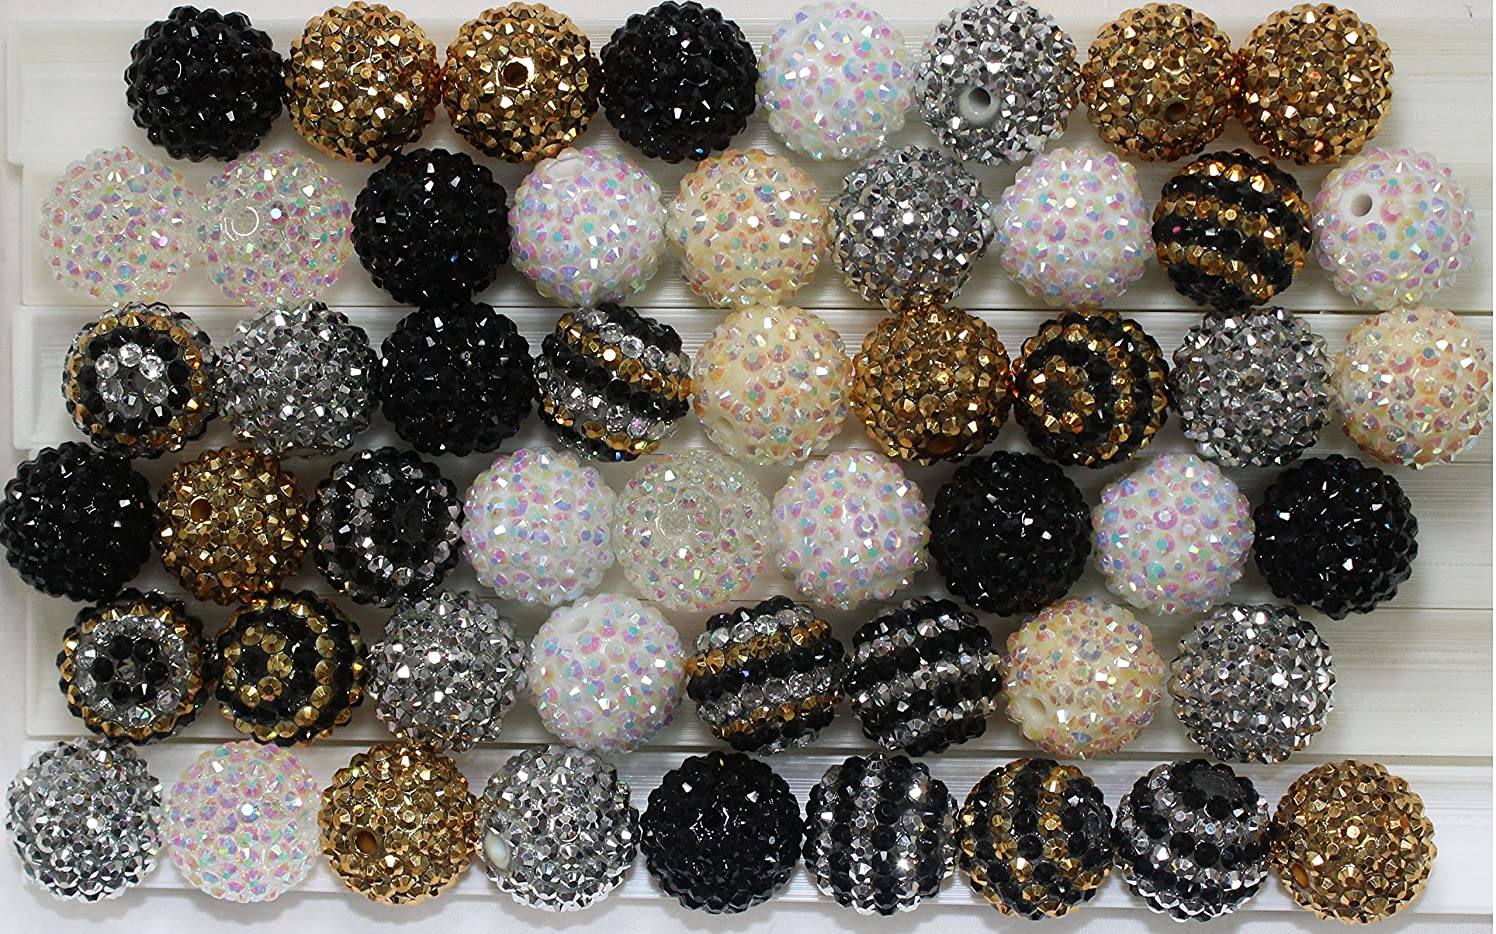 20mm Mix of 52 Black, White, Silver, Gold Cream Rhinestone Chunky Bubblegum Beads 9 Colors Resin Gumball Loose Beads Lot